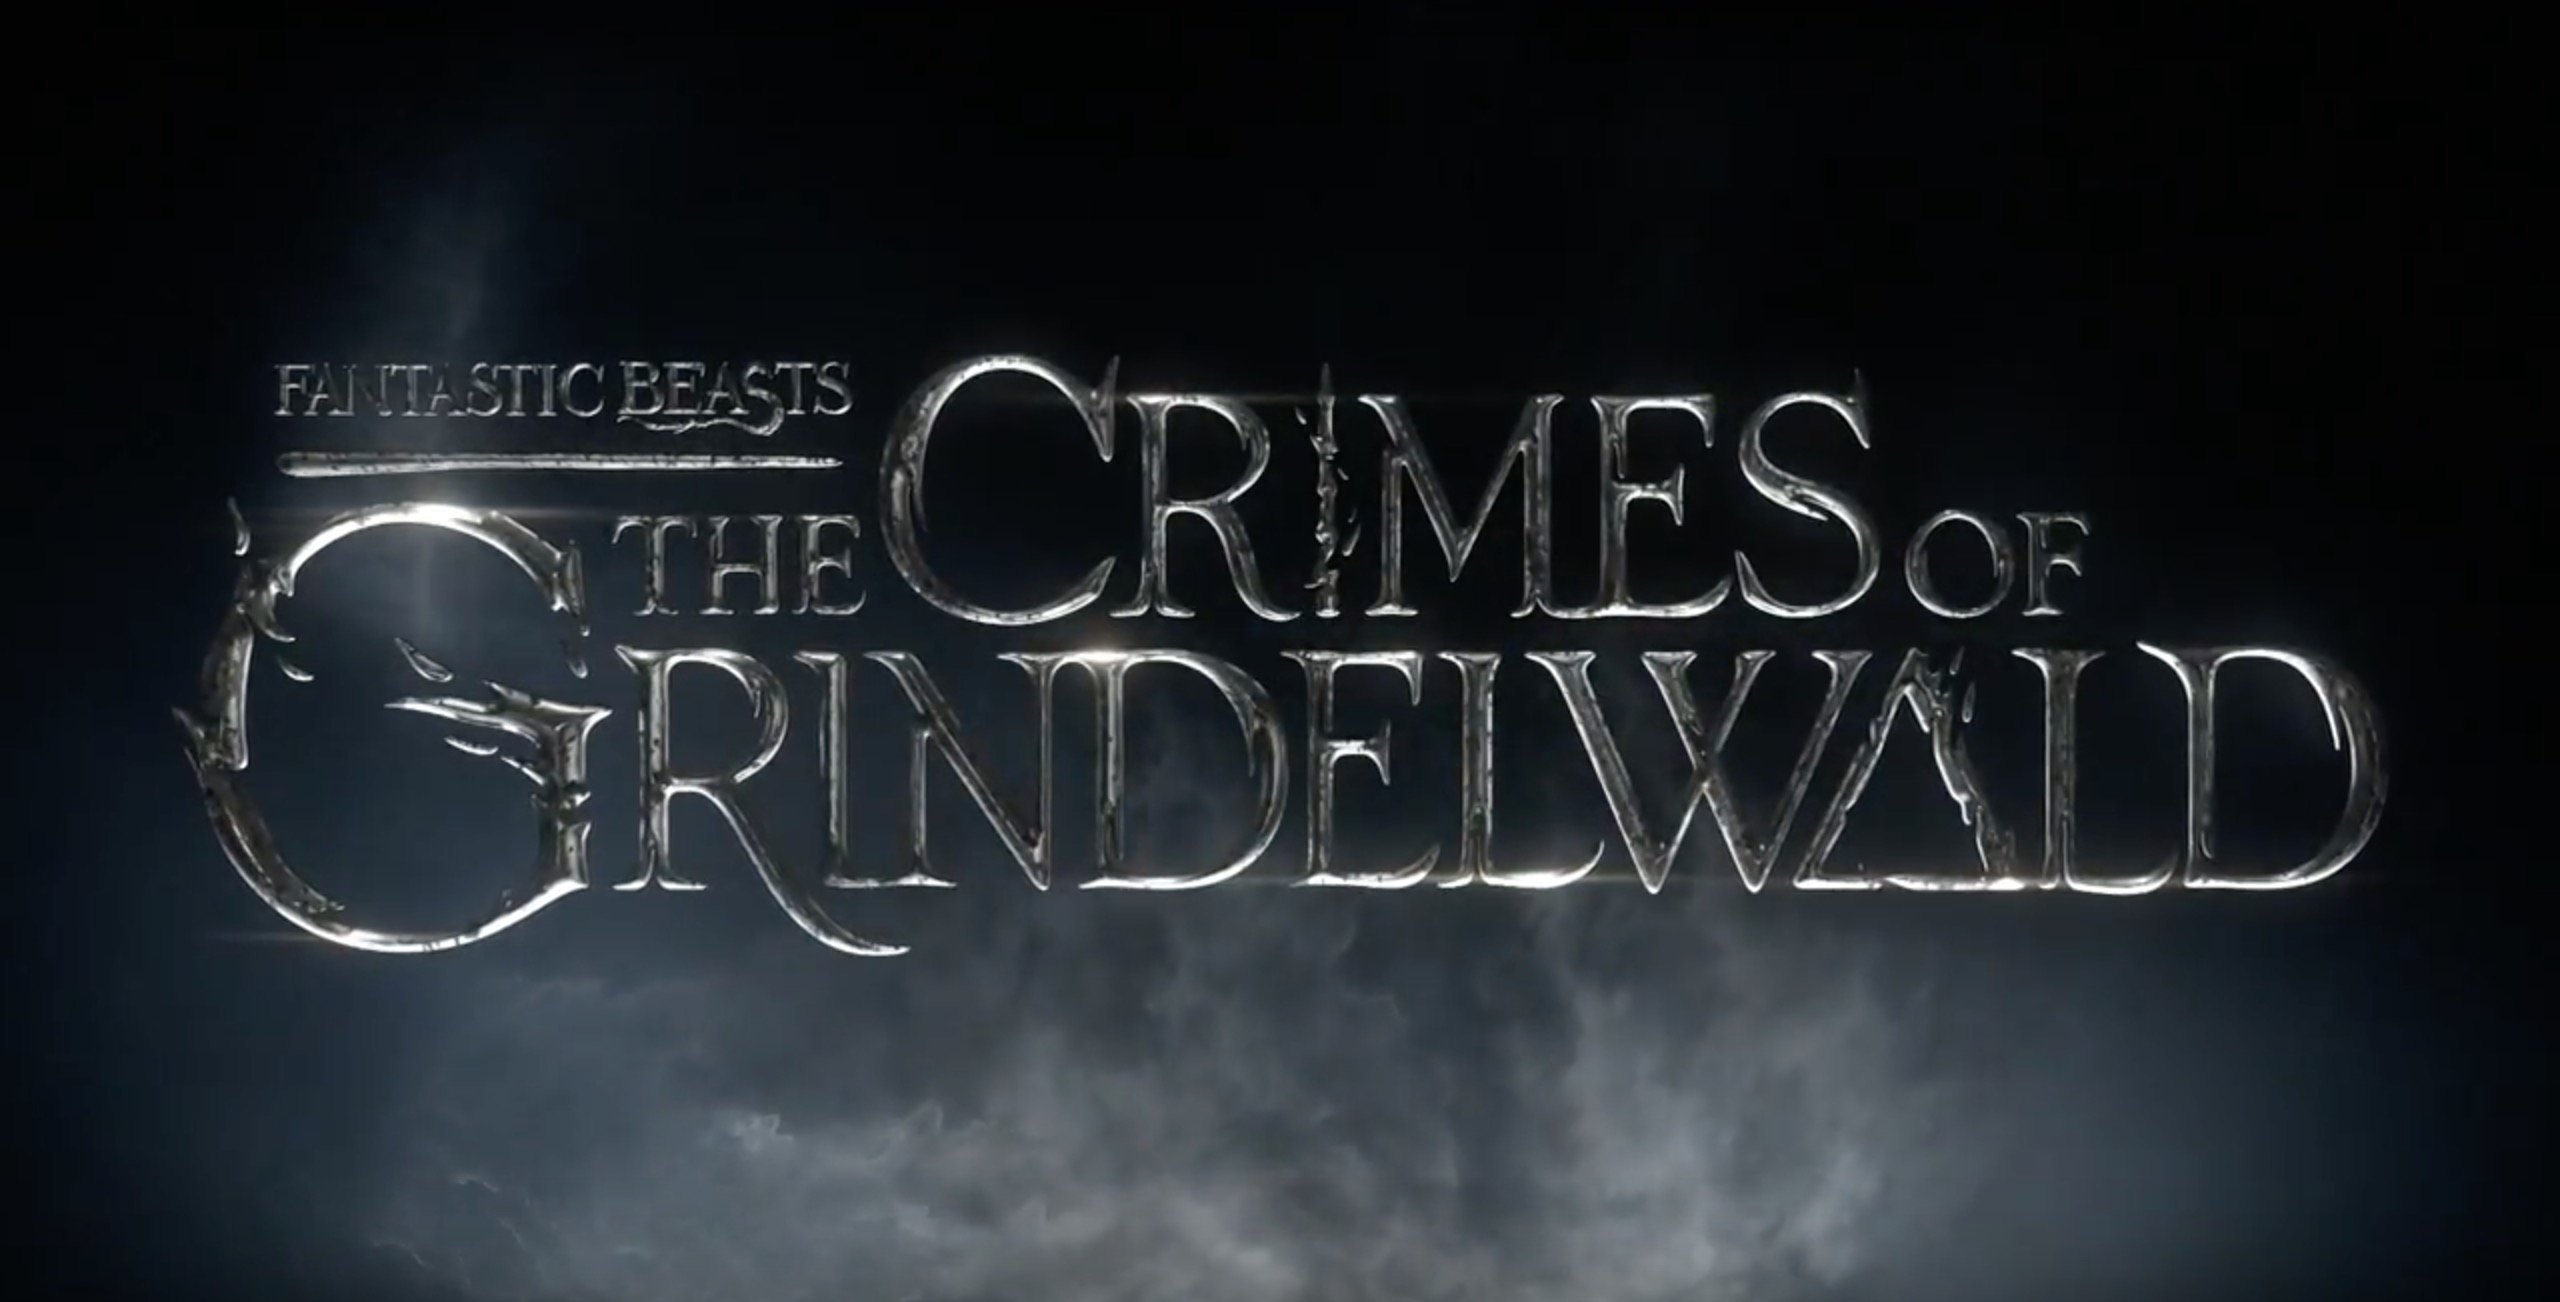 Trailer Tuesday – Fantastic Beasts – The Crimes of Grindelwald